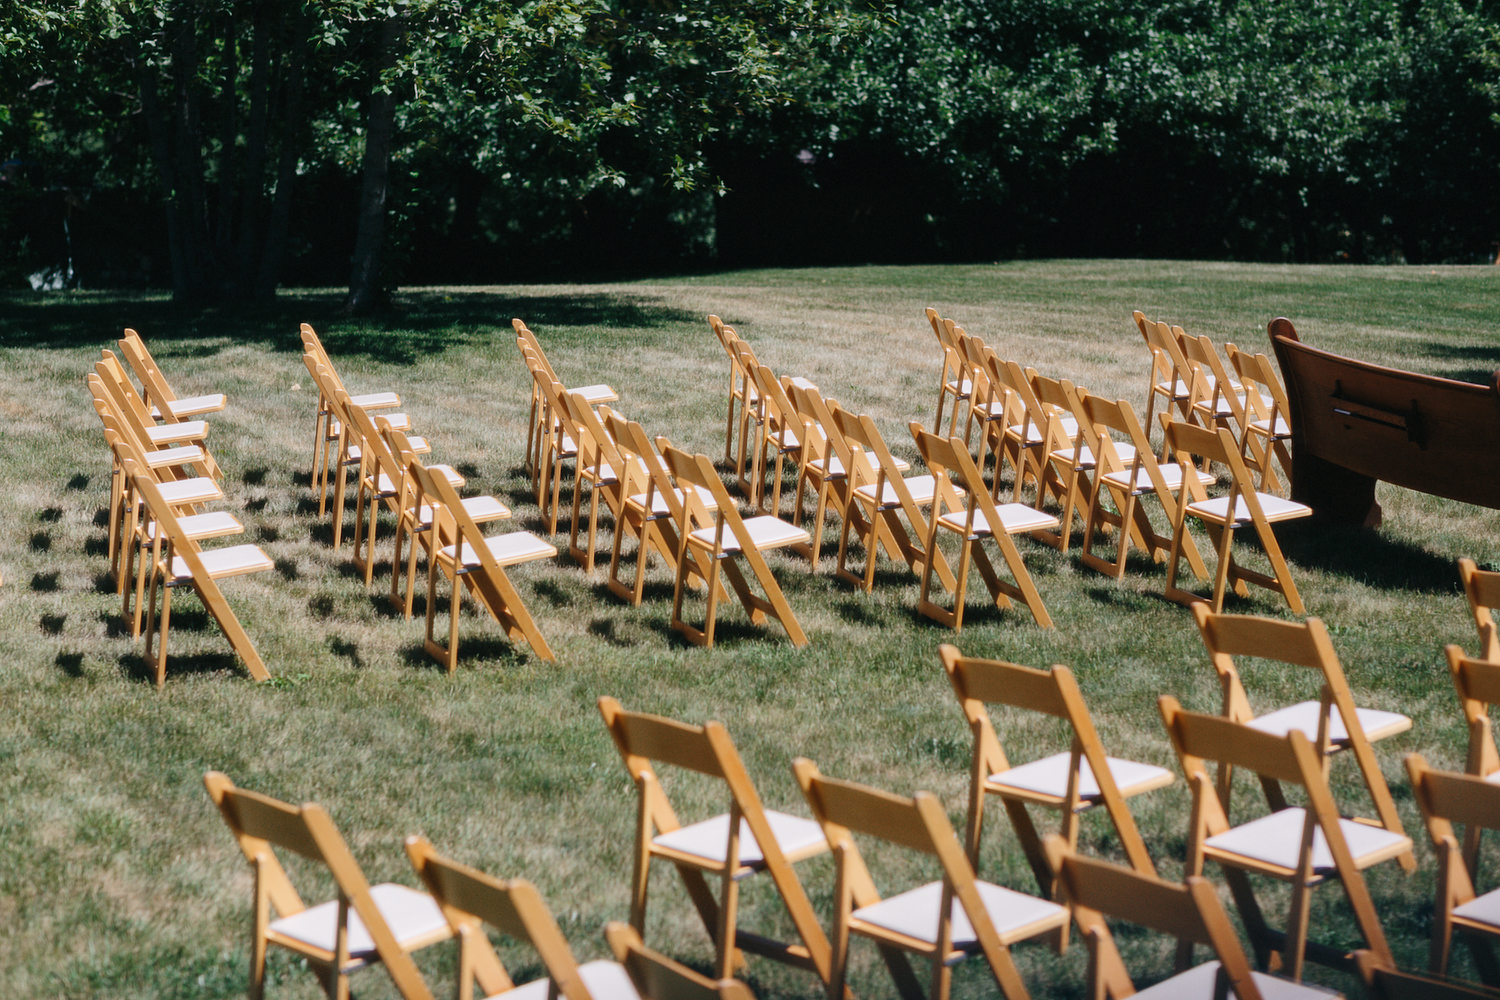 Best-Documentary-photojournalistic-wedding-photographers-Toronto-Ontario-Canada-Rural-Country-House-Backyard-Wedding-Vintage-childhood-home-willow-tree-bench-from-old-church-pew.jpg